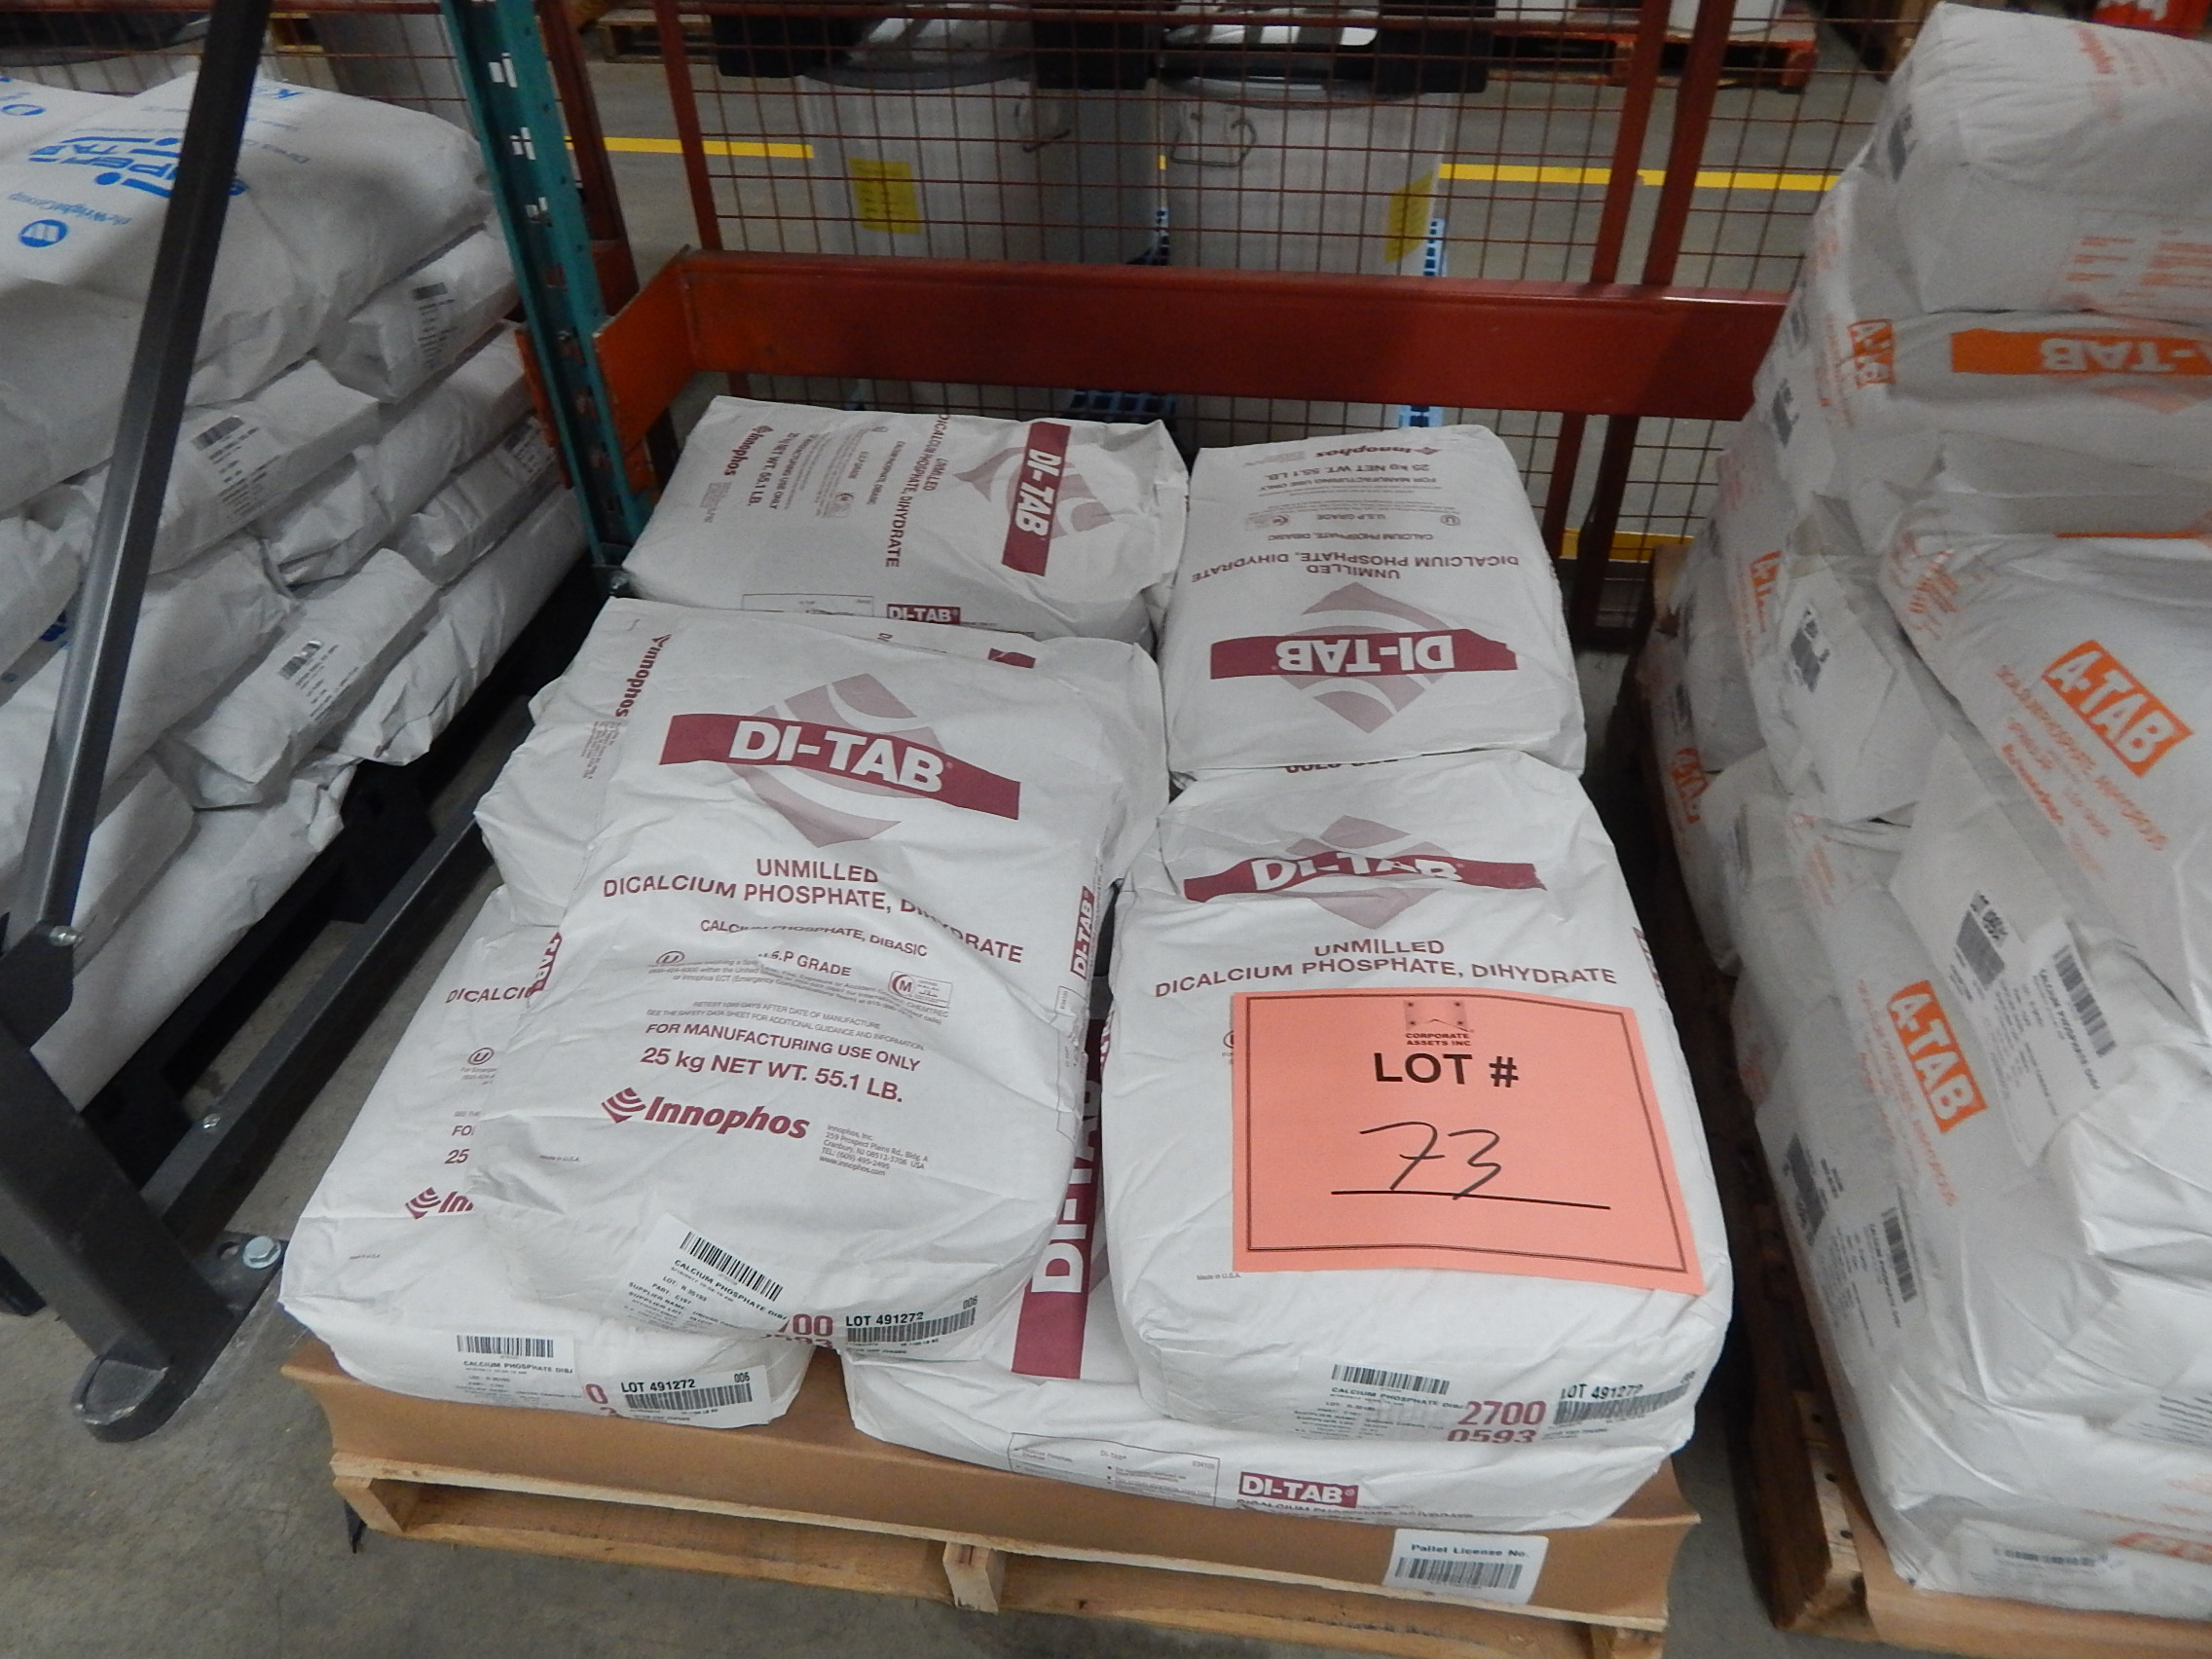 Lot 73 - LOT/ SKID WITH CONTENTS CONSISTING OF 25KG BAGS OF CALCIUM PHOSPHATE